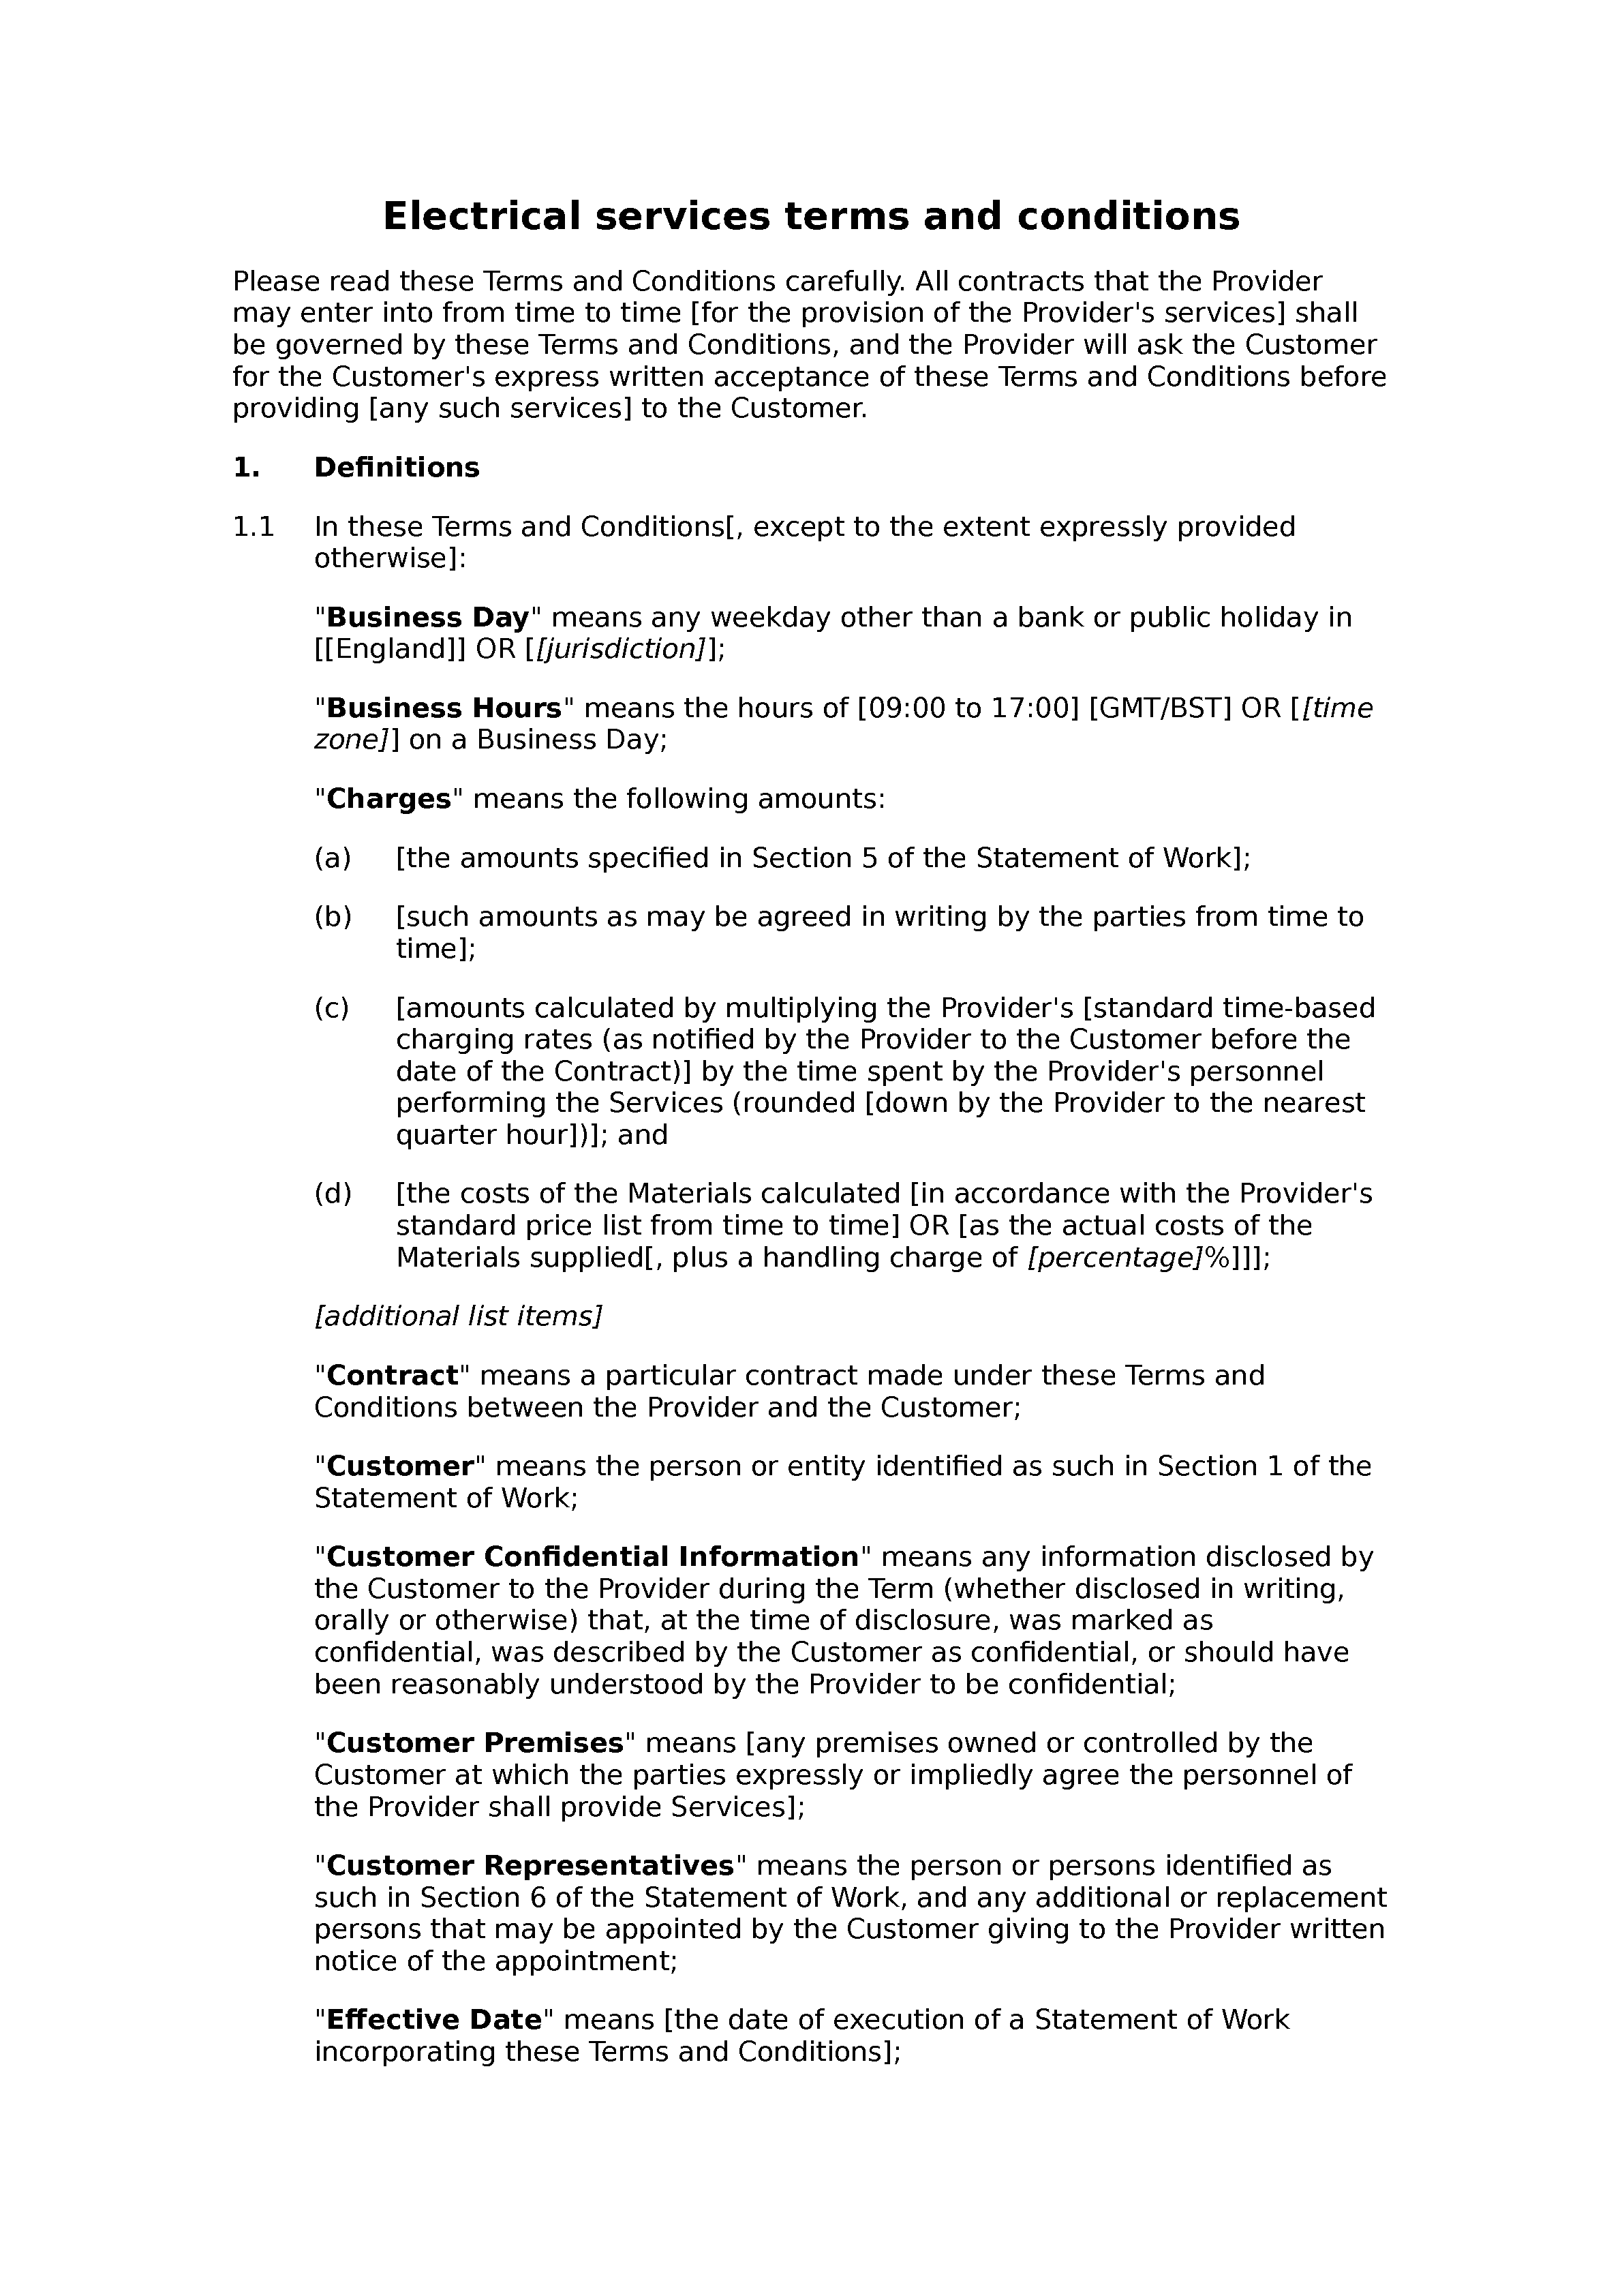 Electrical services terms and conditions document preview